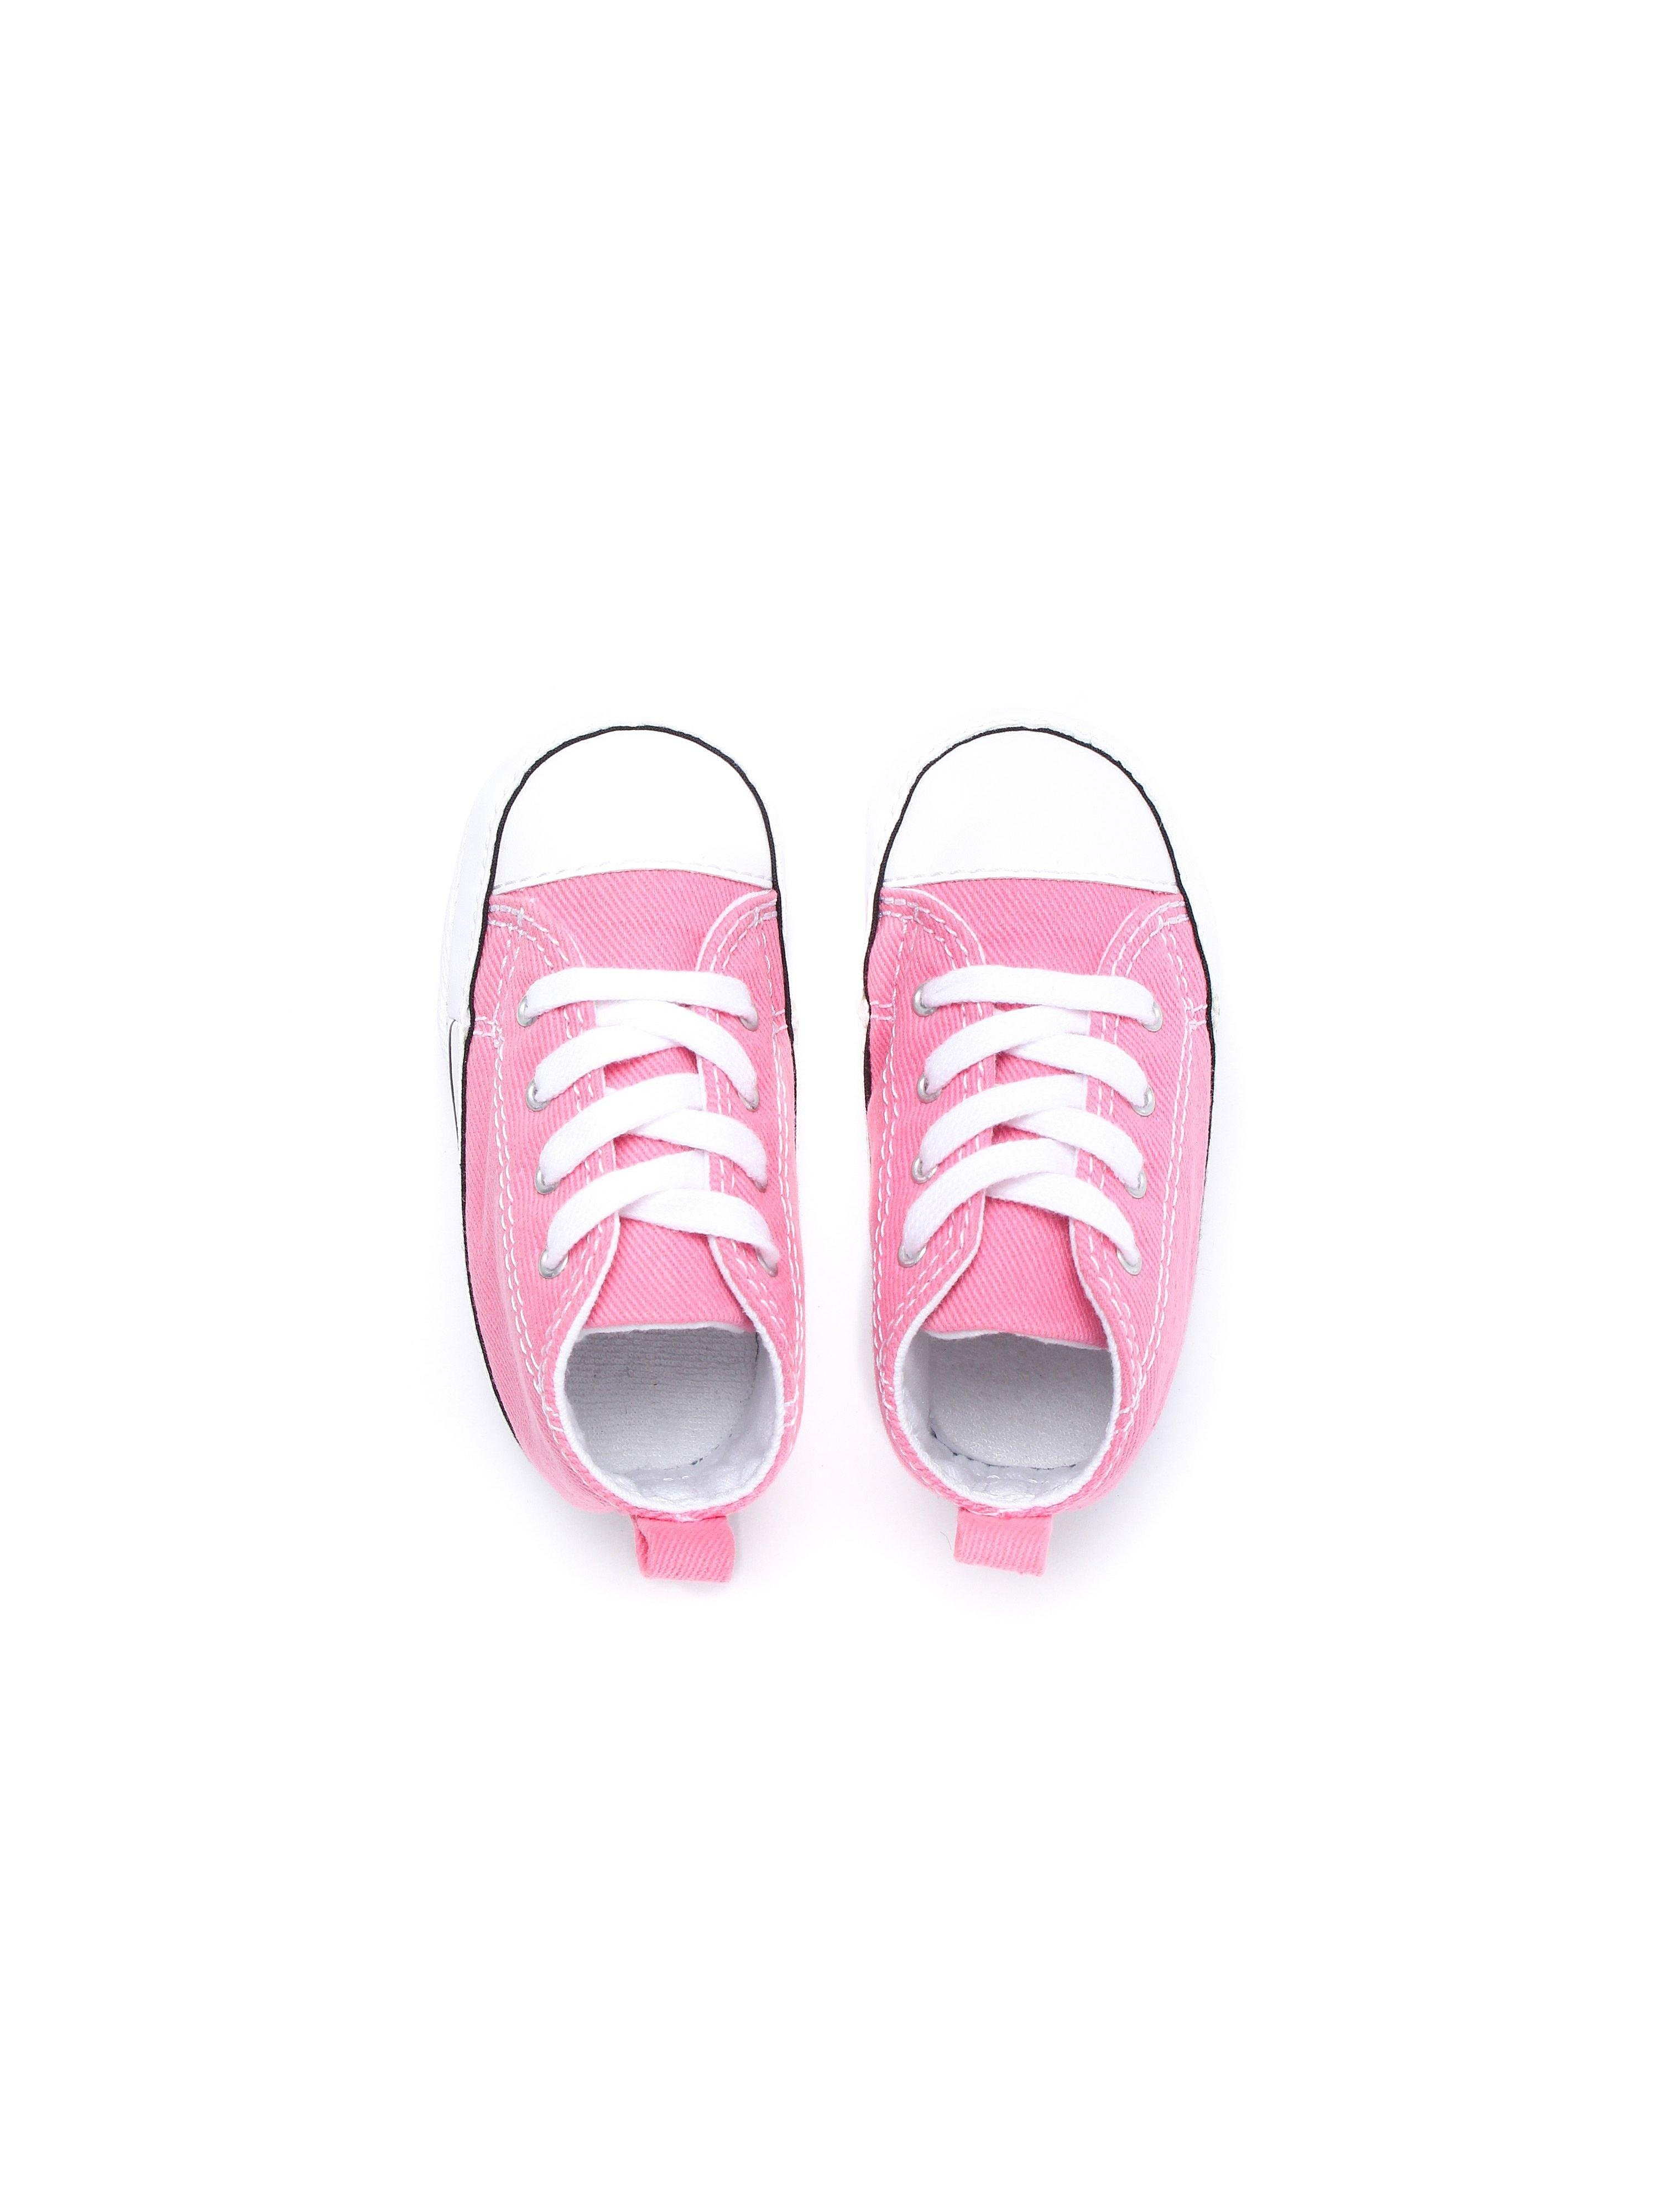 Converse Infants Crib First Star High Top - Pink